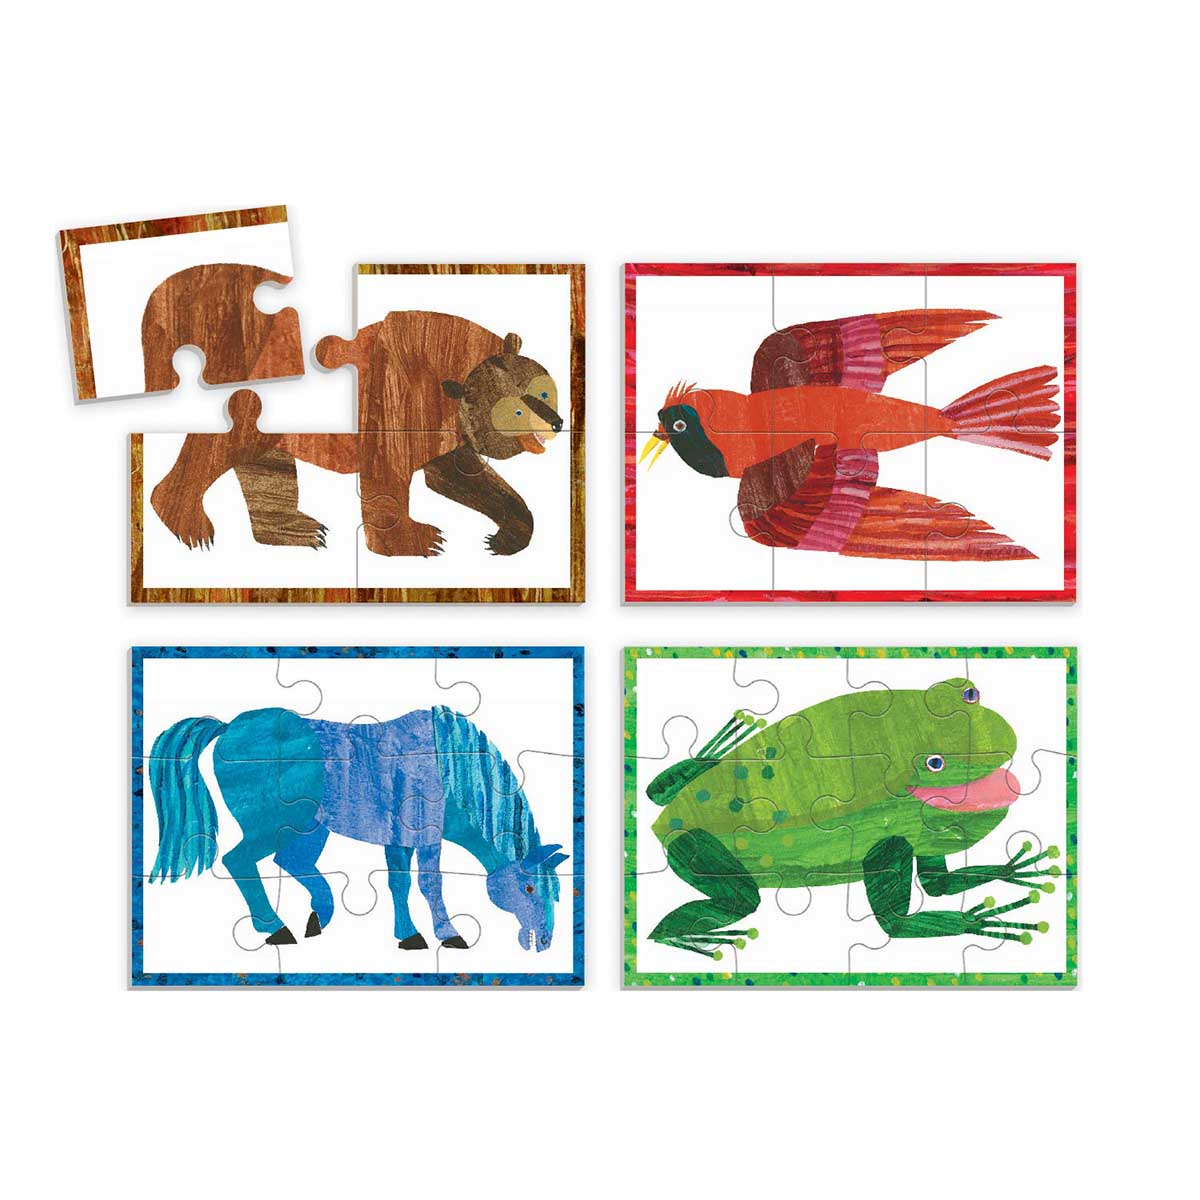 World of Eric Carle, Brown Bear Animals Jigsaw Puzzle